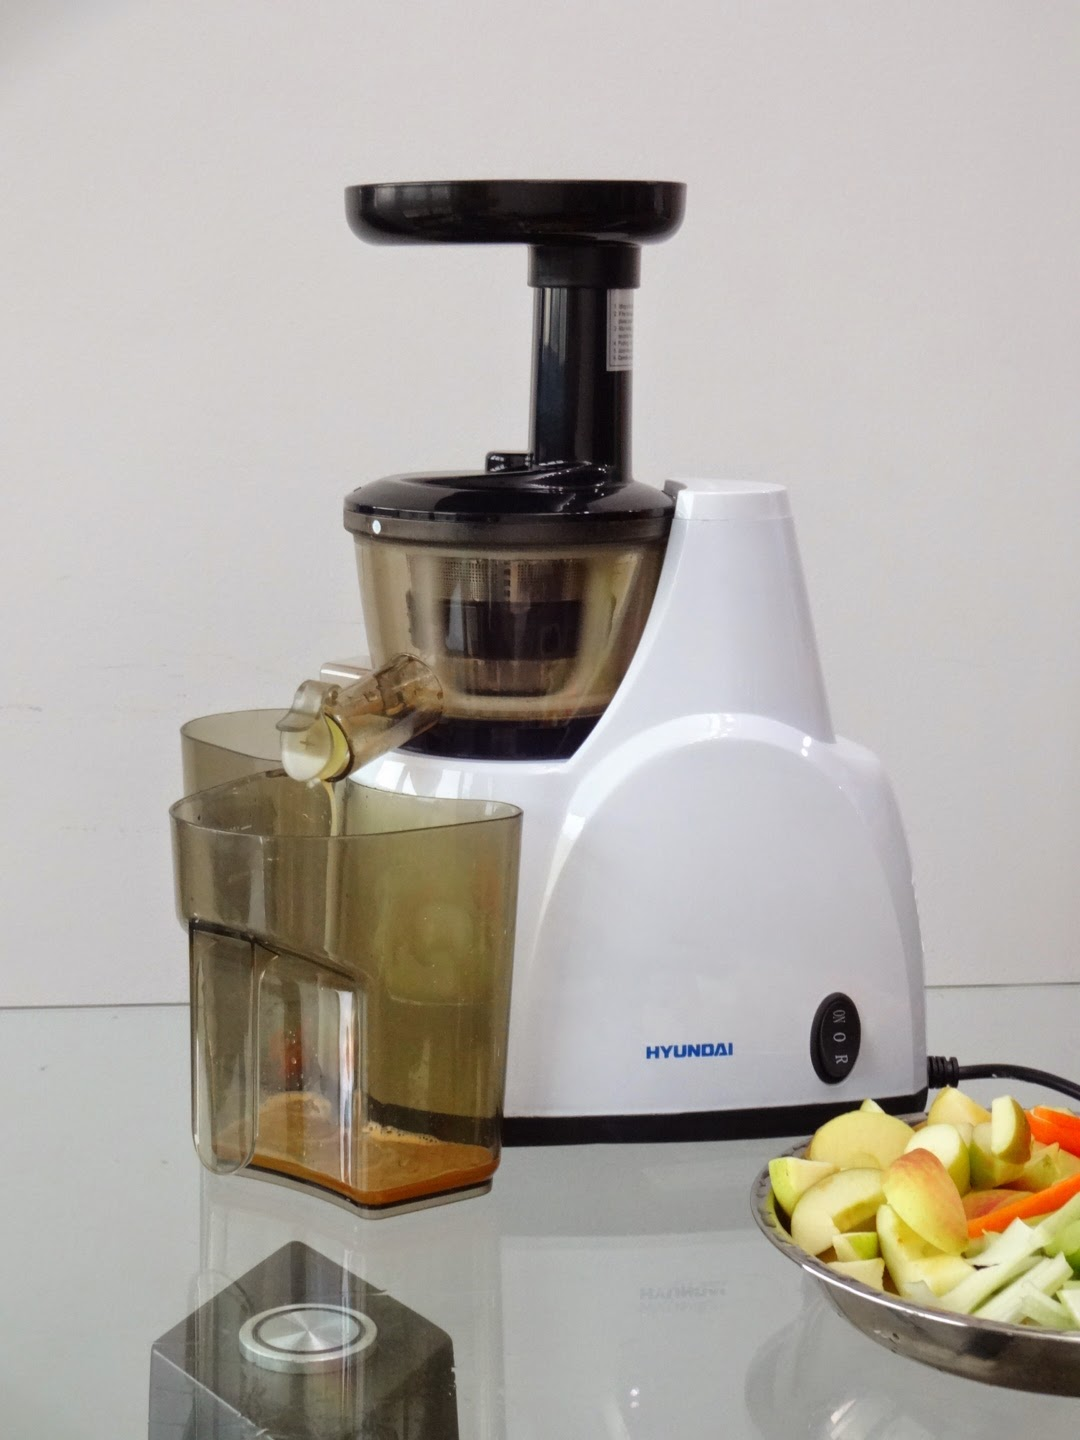 Hyundai Slow Juicer Hysj 7730 : a day in the life of a BE@RBRICK: Hyundai Slow Juicer [Updated]